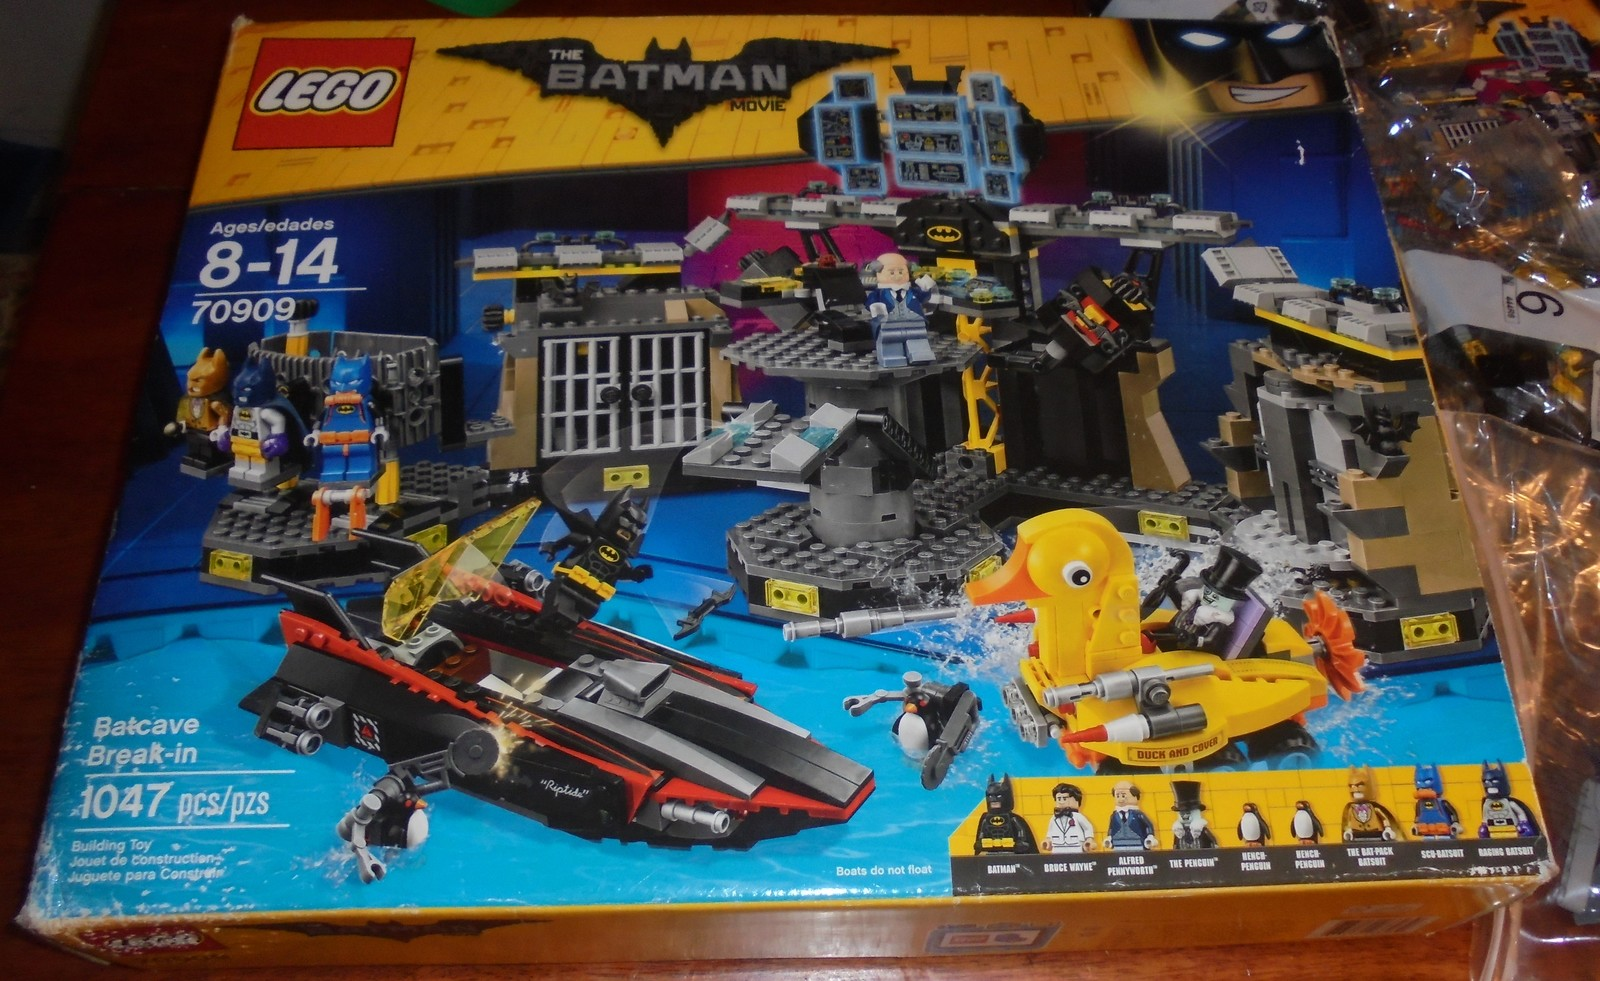 LEGO Batman Movie Batcave Break-in (70909) Building Set [Used READ Open Box]